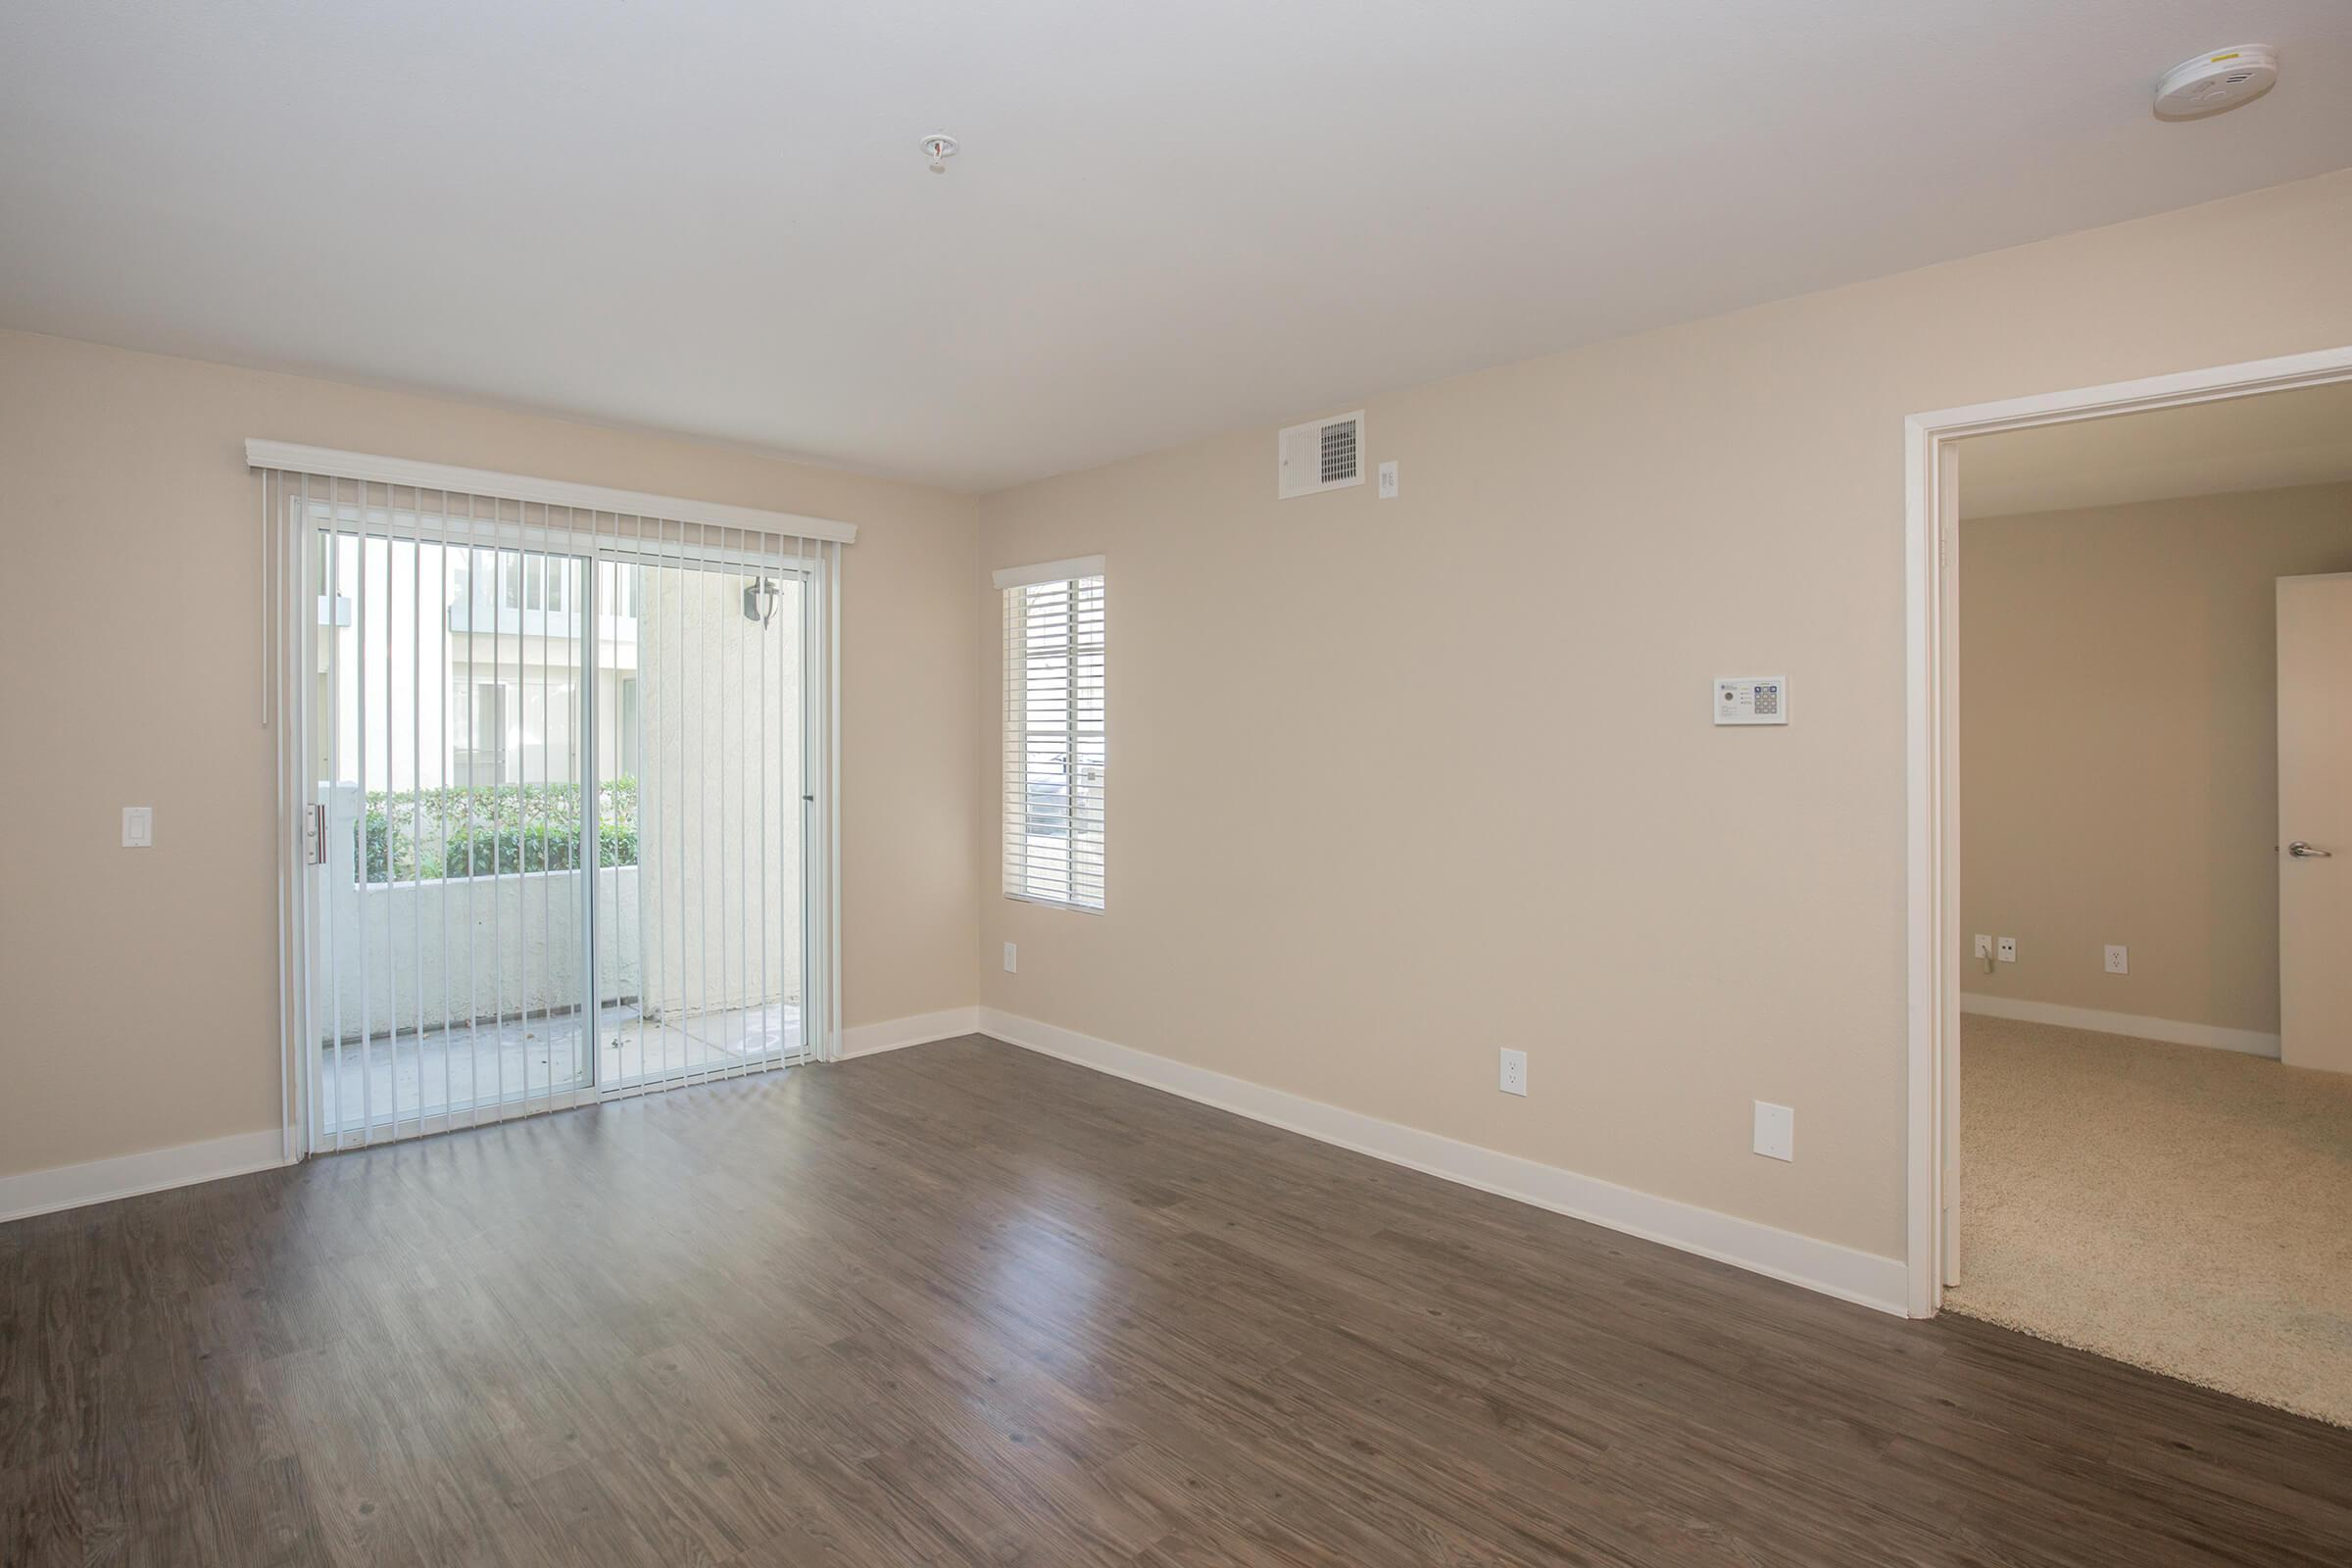 Vacant living room with glass sliding doors to patio